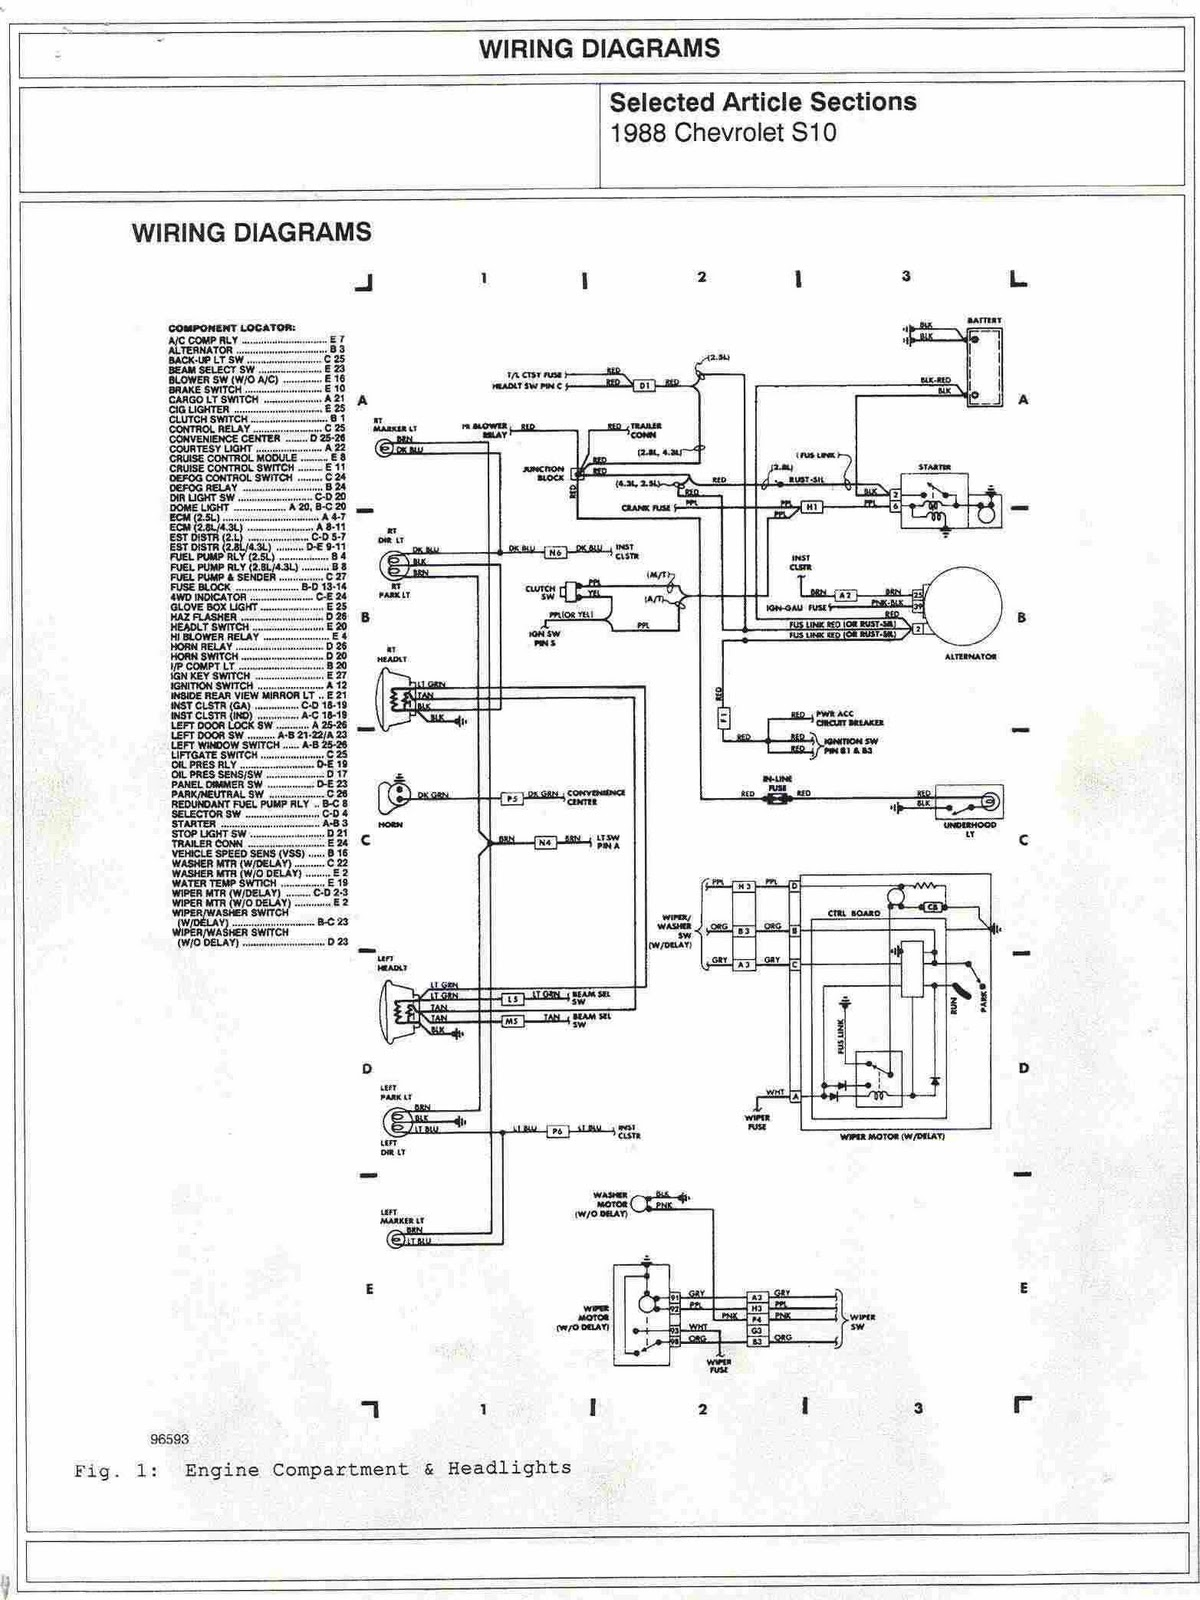 1988 chevrolet s10 engine compartment and headlights wiring diagrams all about wiring diagrams. Black Bedroom Furniture Sets. Home Design Ideas